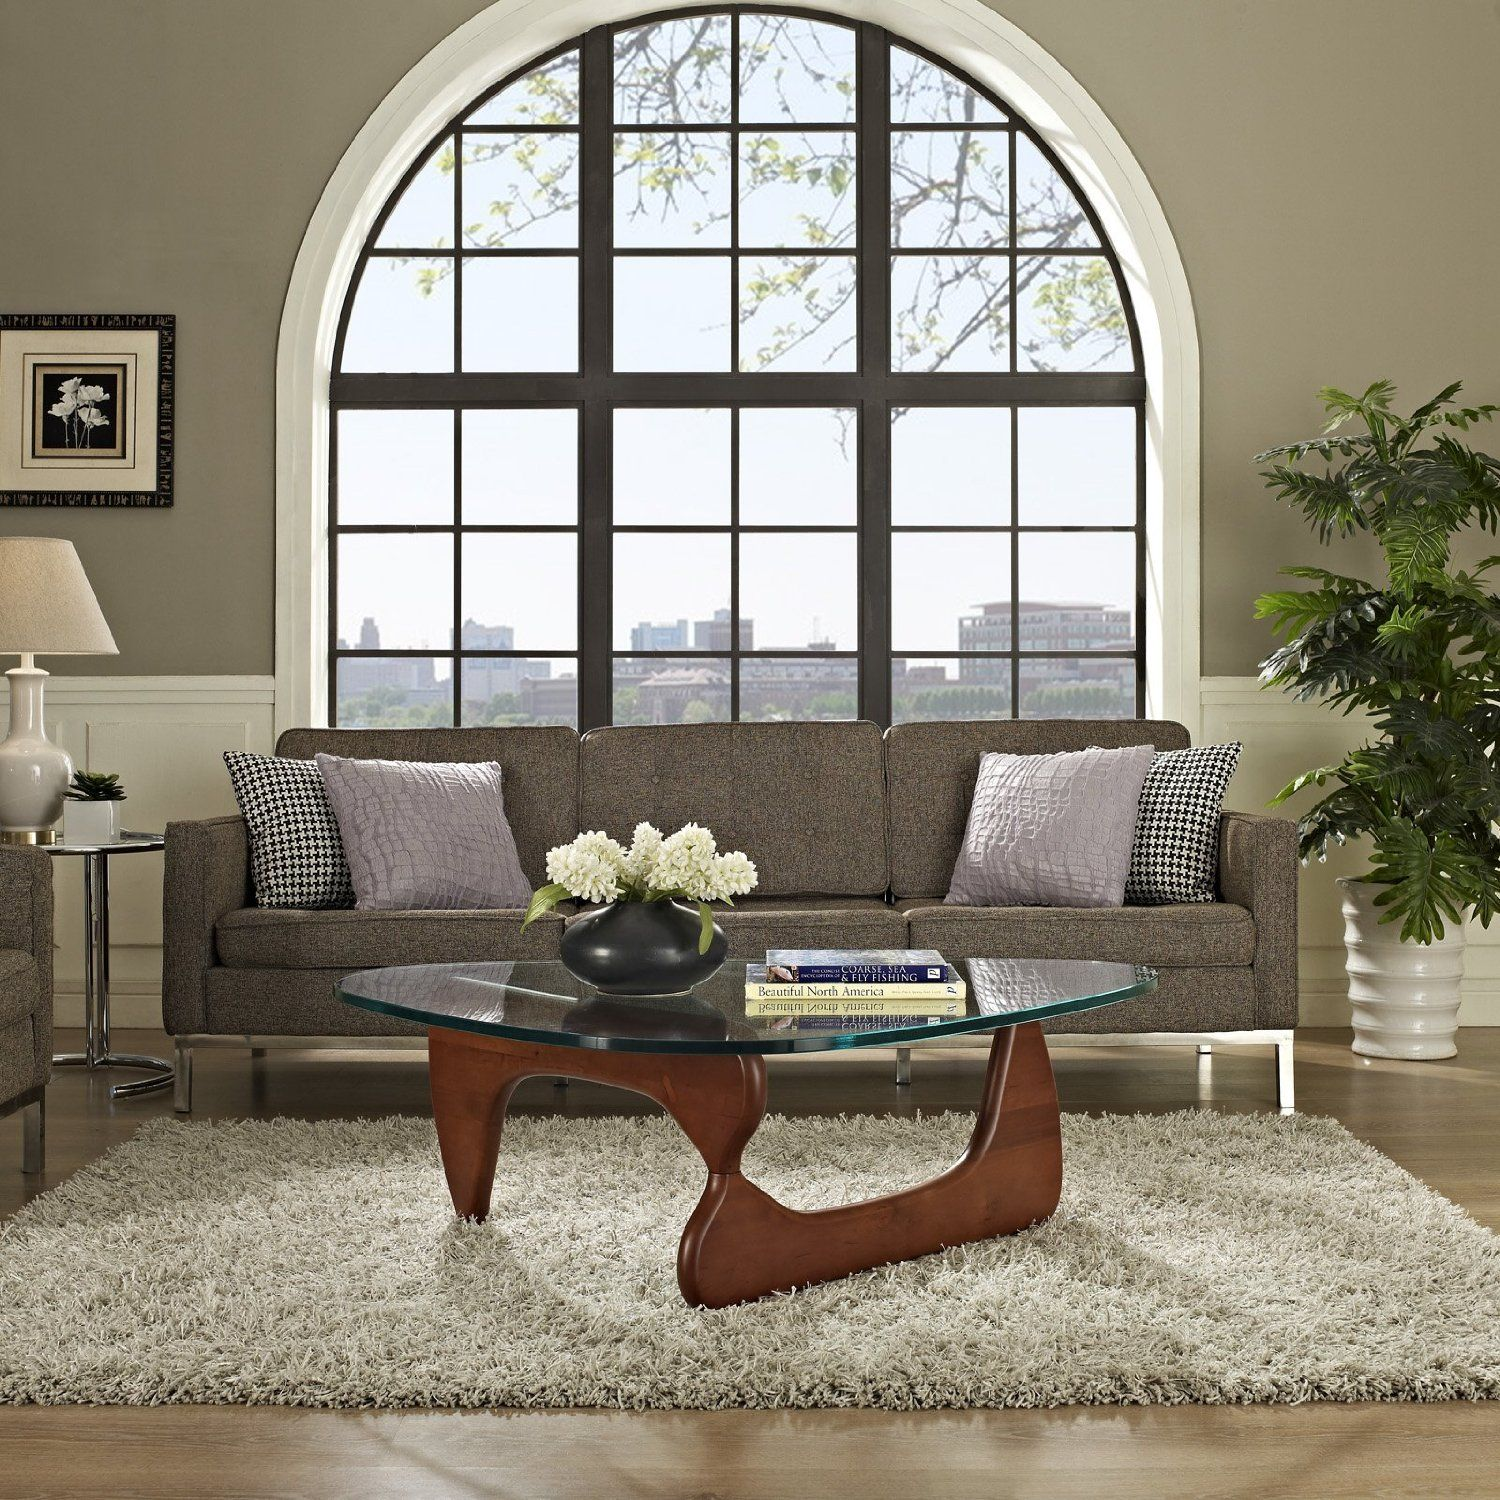 Alluring Collapse Coffee Table And White Fur Rug With Glass Window